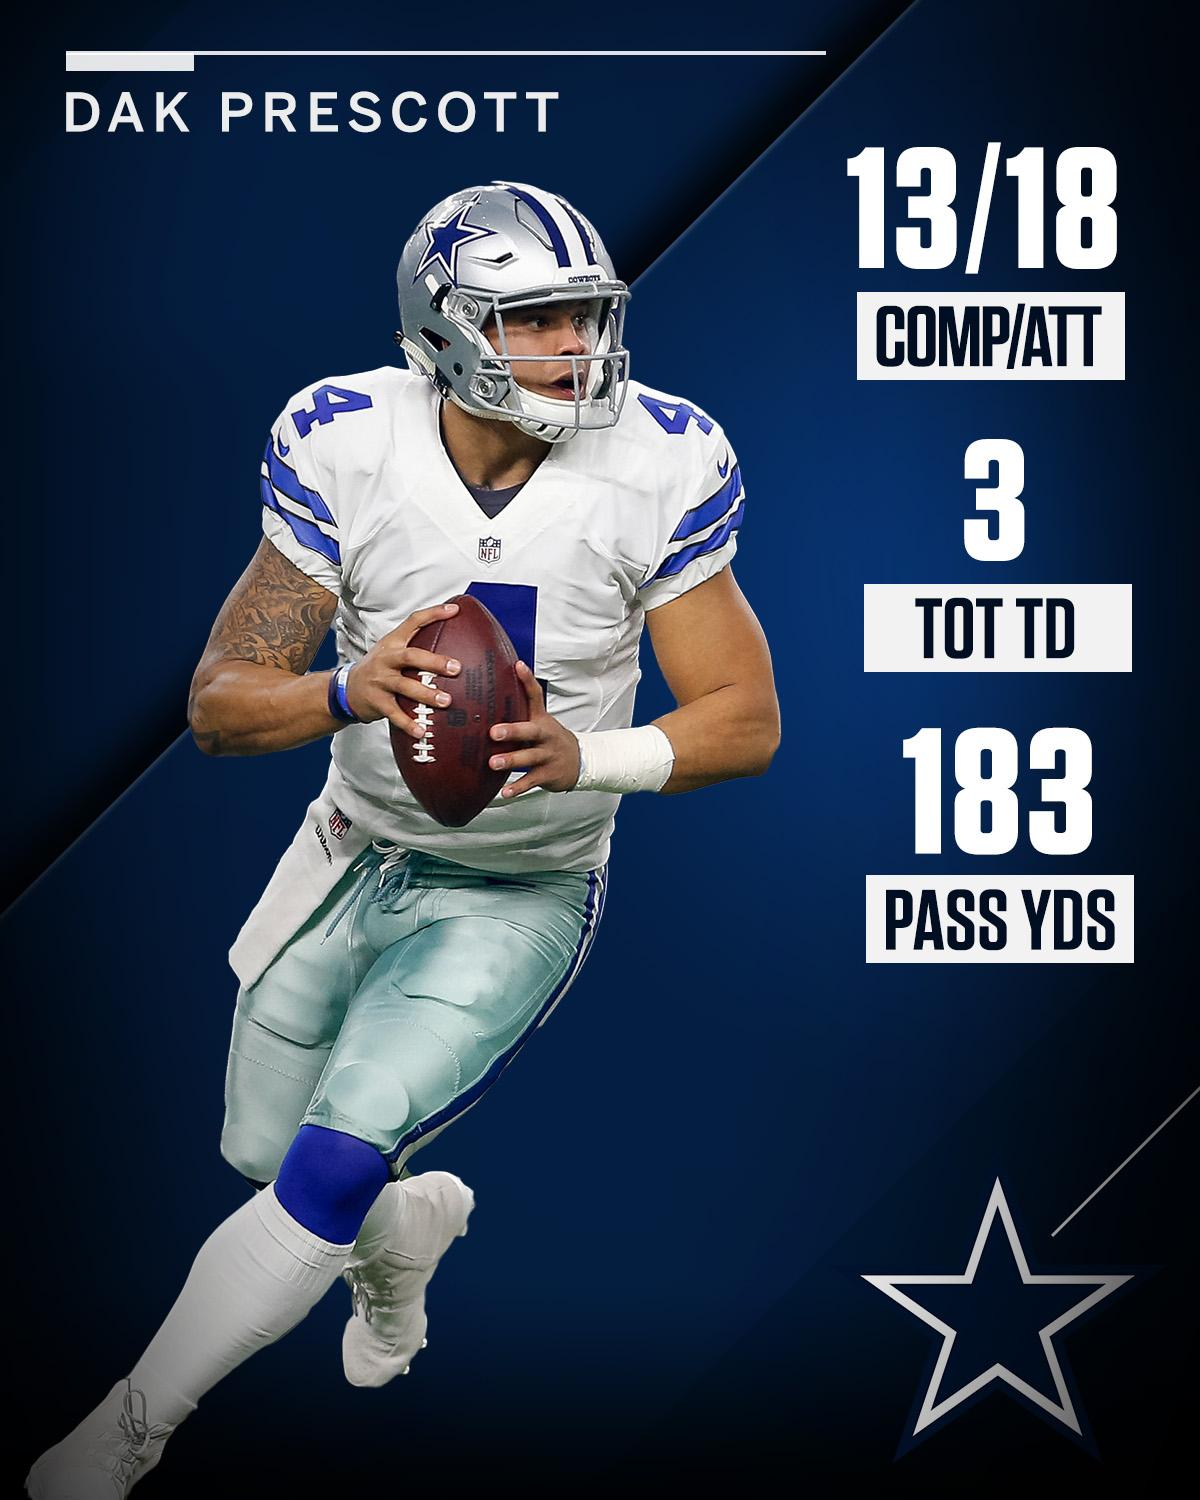 Bounce back night for Dak and the Cowboys. https://t.co/B4DWBbmmsY